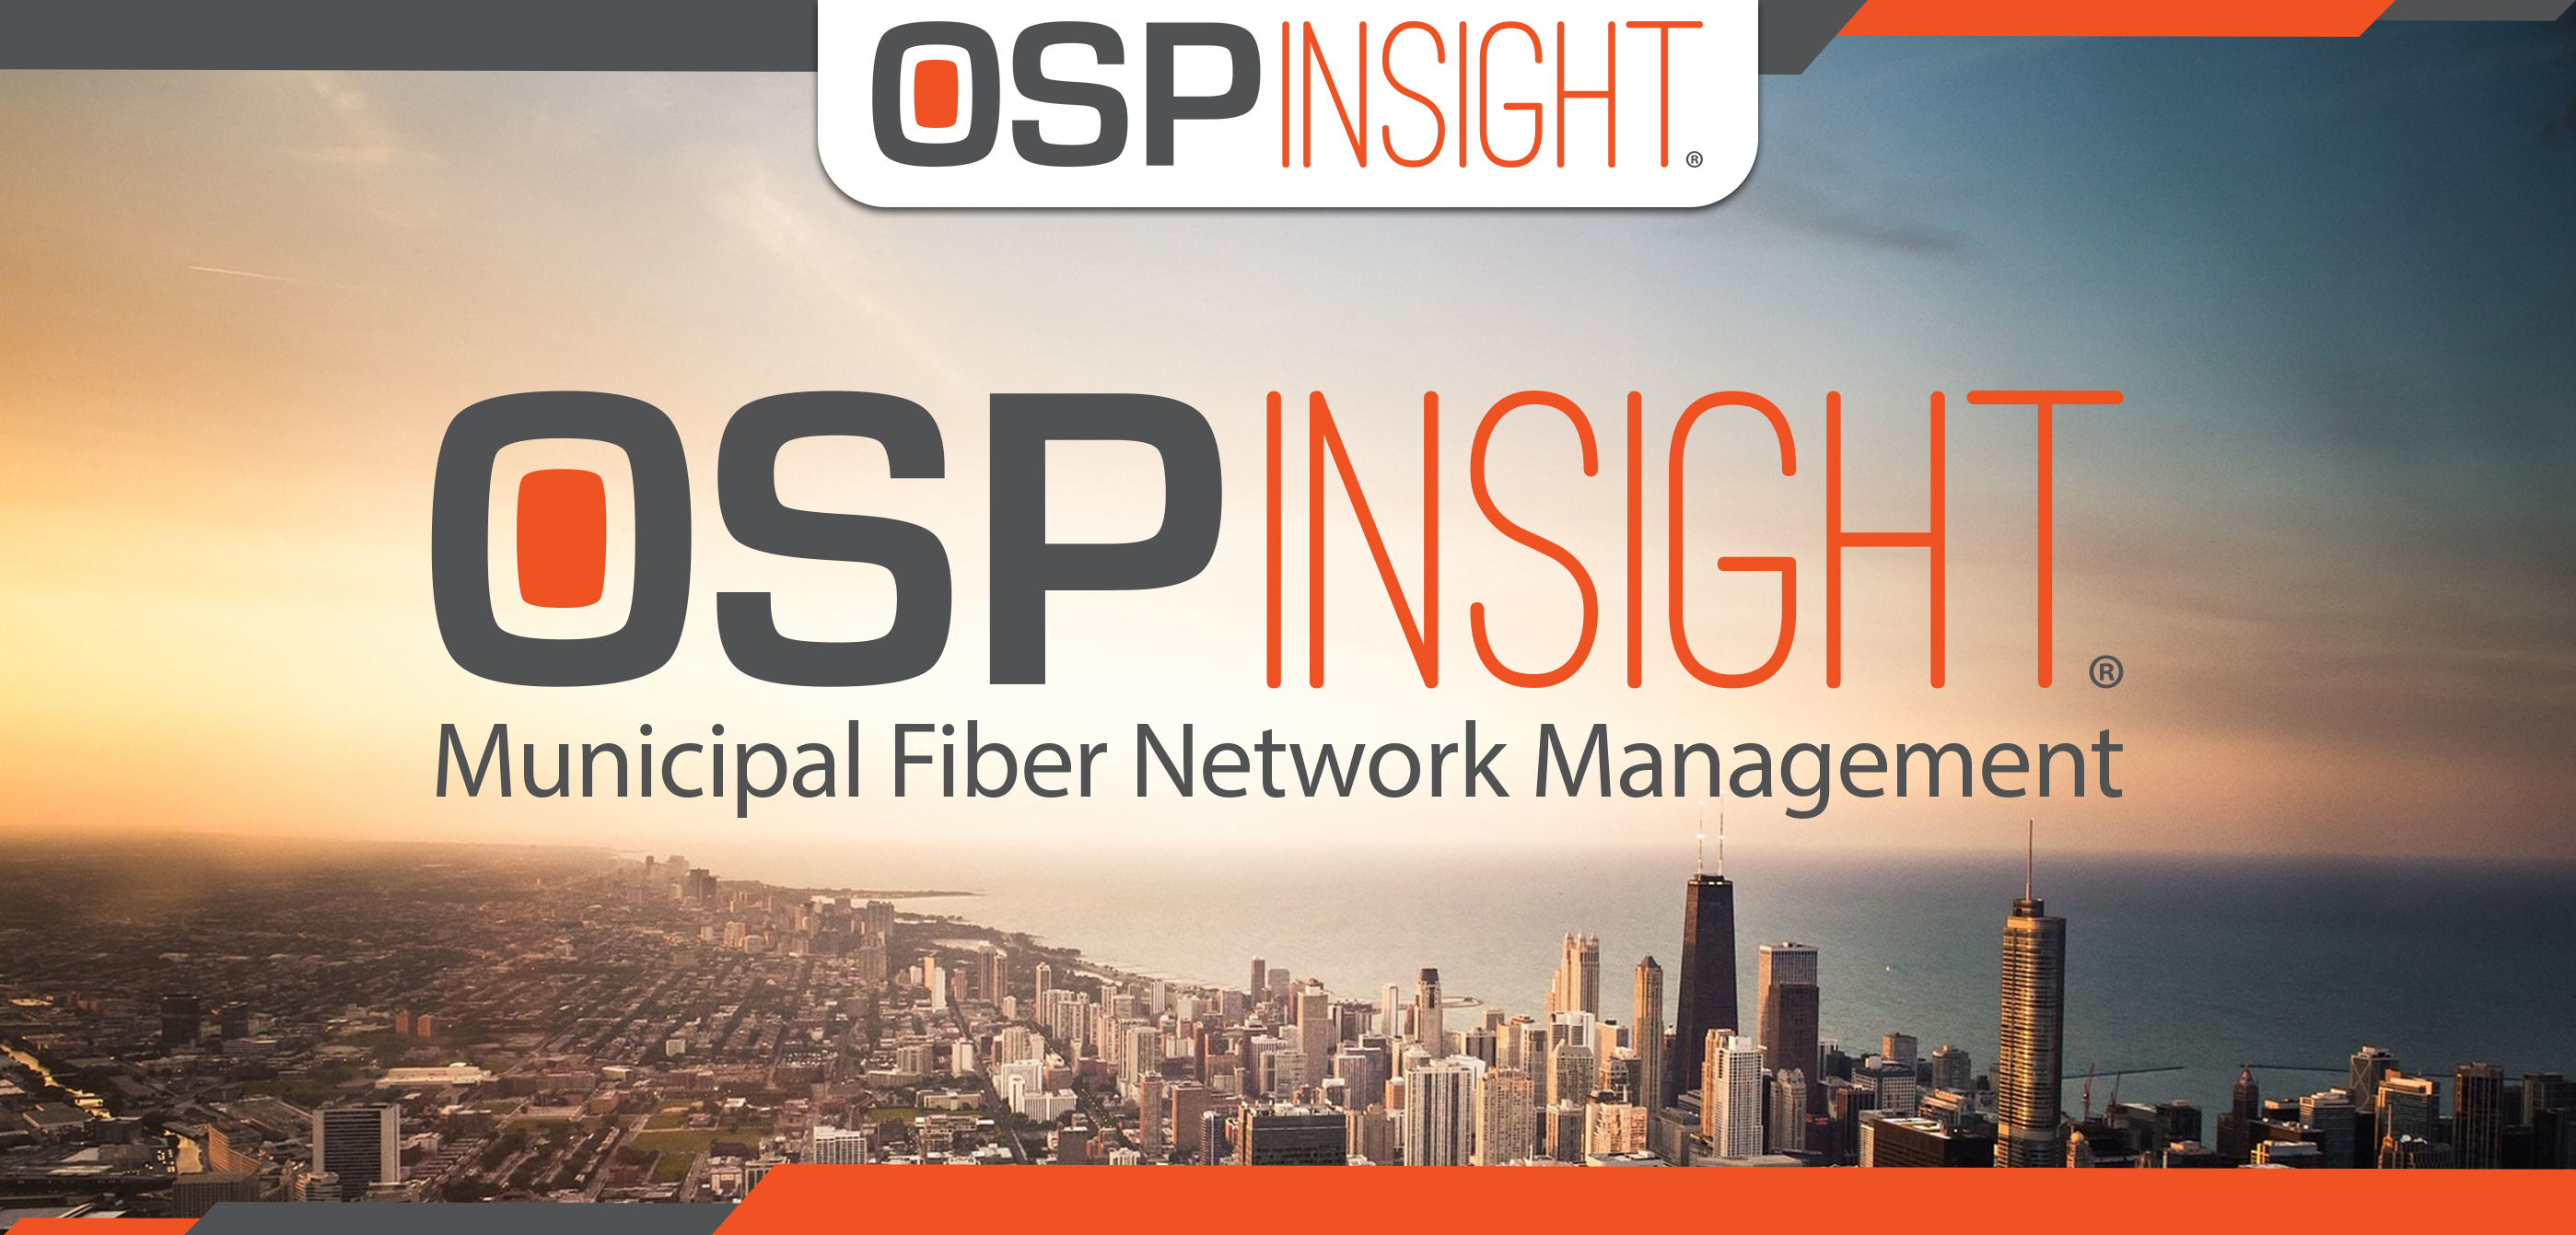 Manage Municipal Fiber Networks With OSPInsight (featured image)